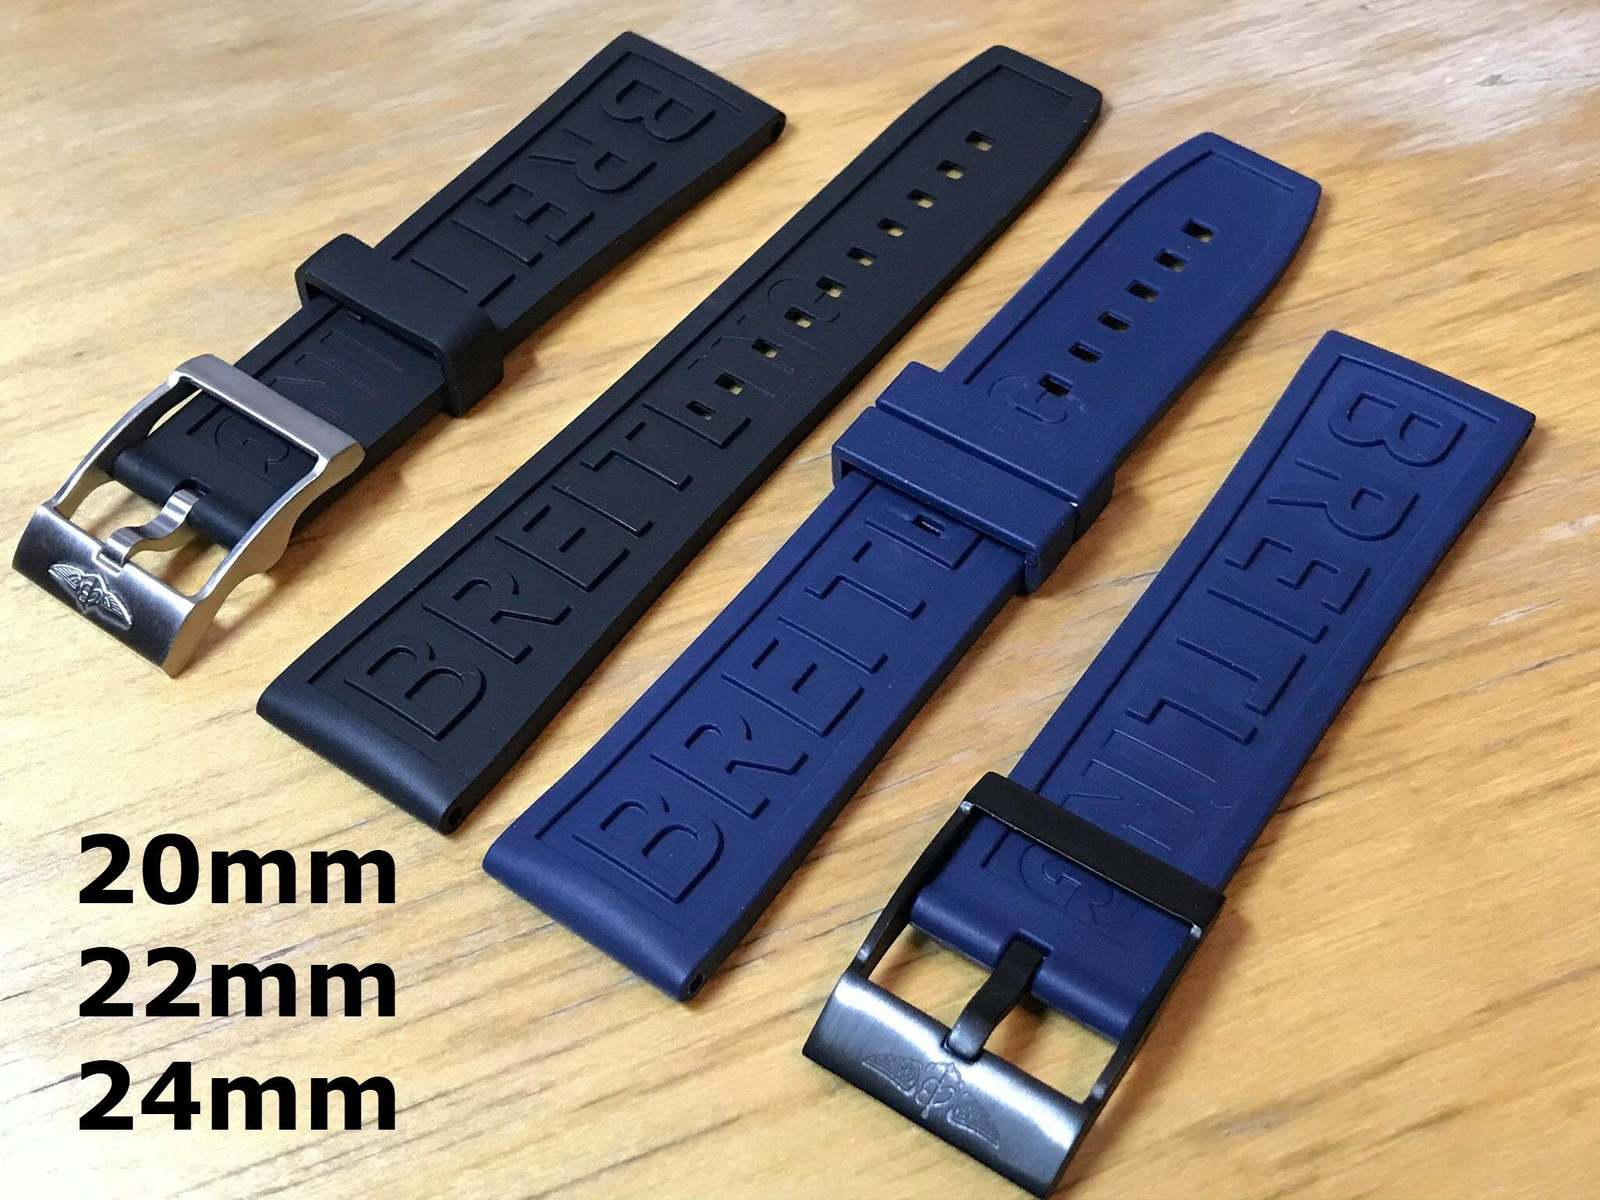 New 20/22/24mm BAND STRAP For Breitling High Quality Band For Breitling Watch - $34.99